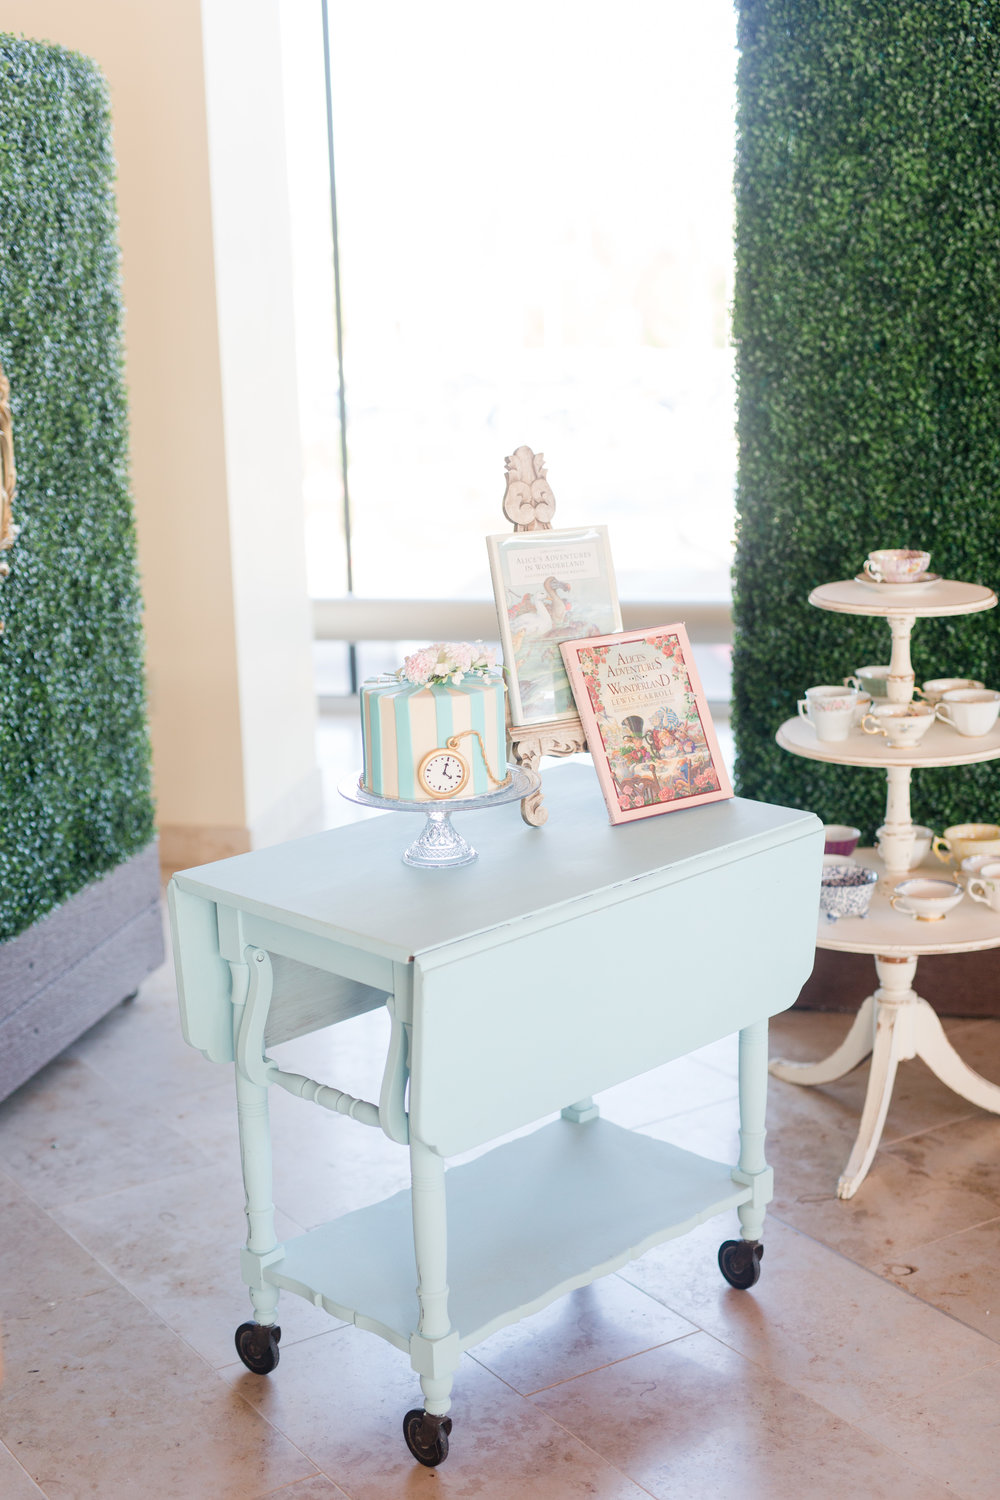 Tiered Table - $35.00